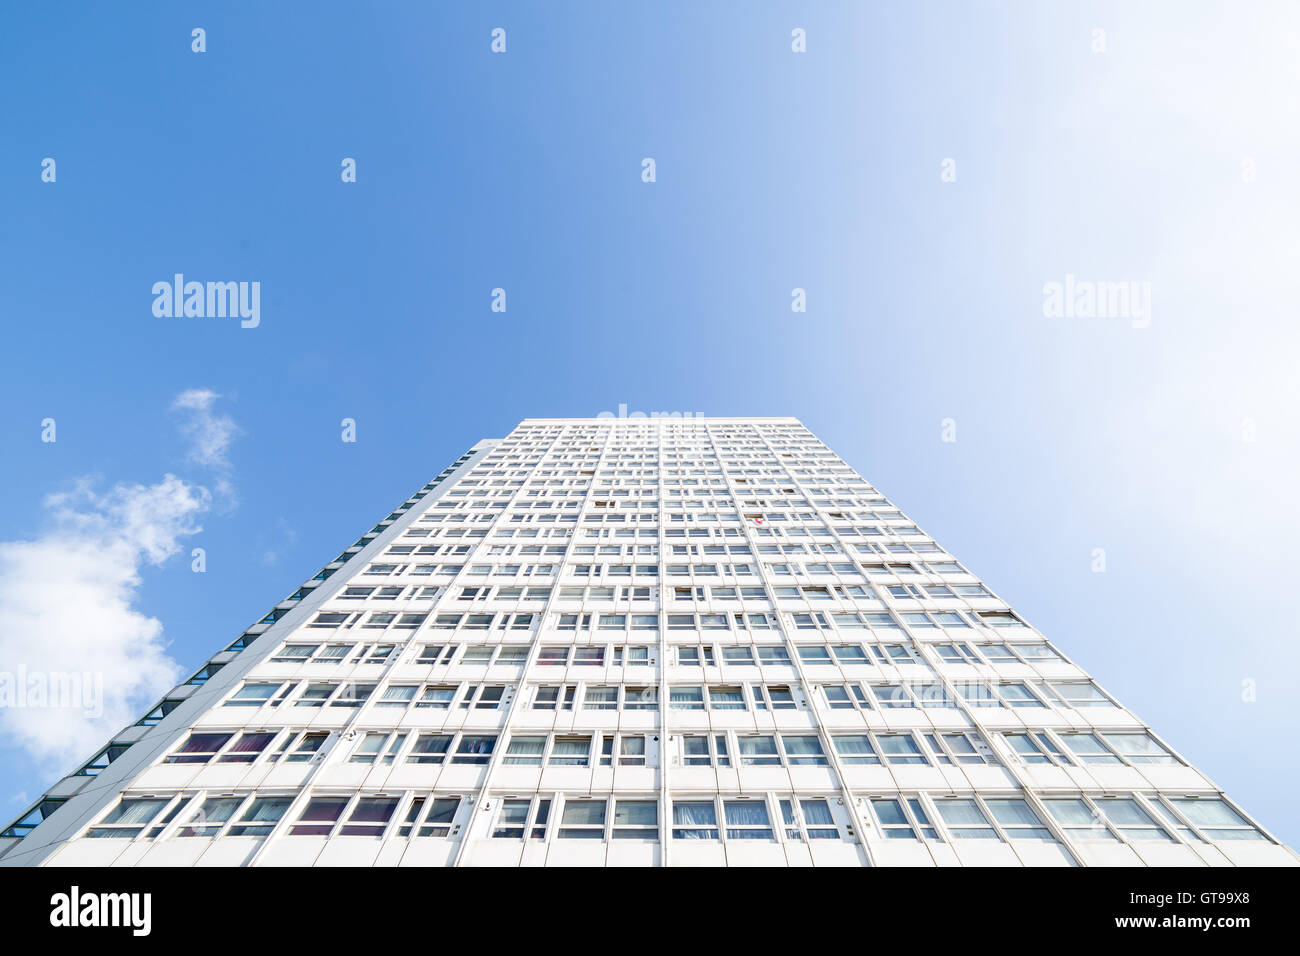 Eddystone Tower high-rise building. A tower block part of the Pepys Estate council housing buildings in south east - Stock Image